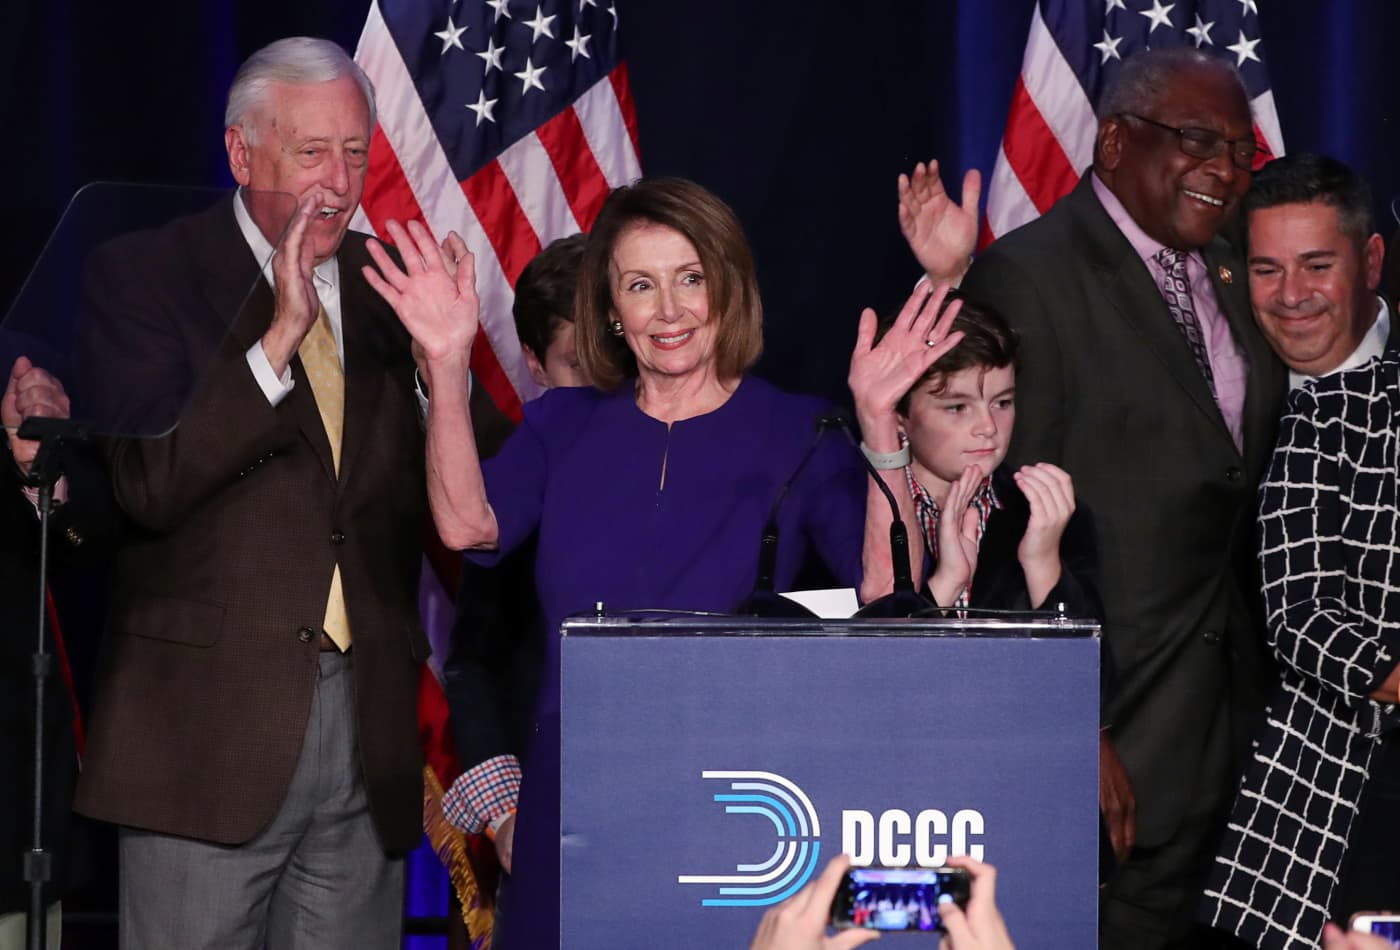 A week later it's clear the midterms did produce a blue wave – here are the three main factors that drove the Democrats' triumph